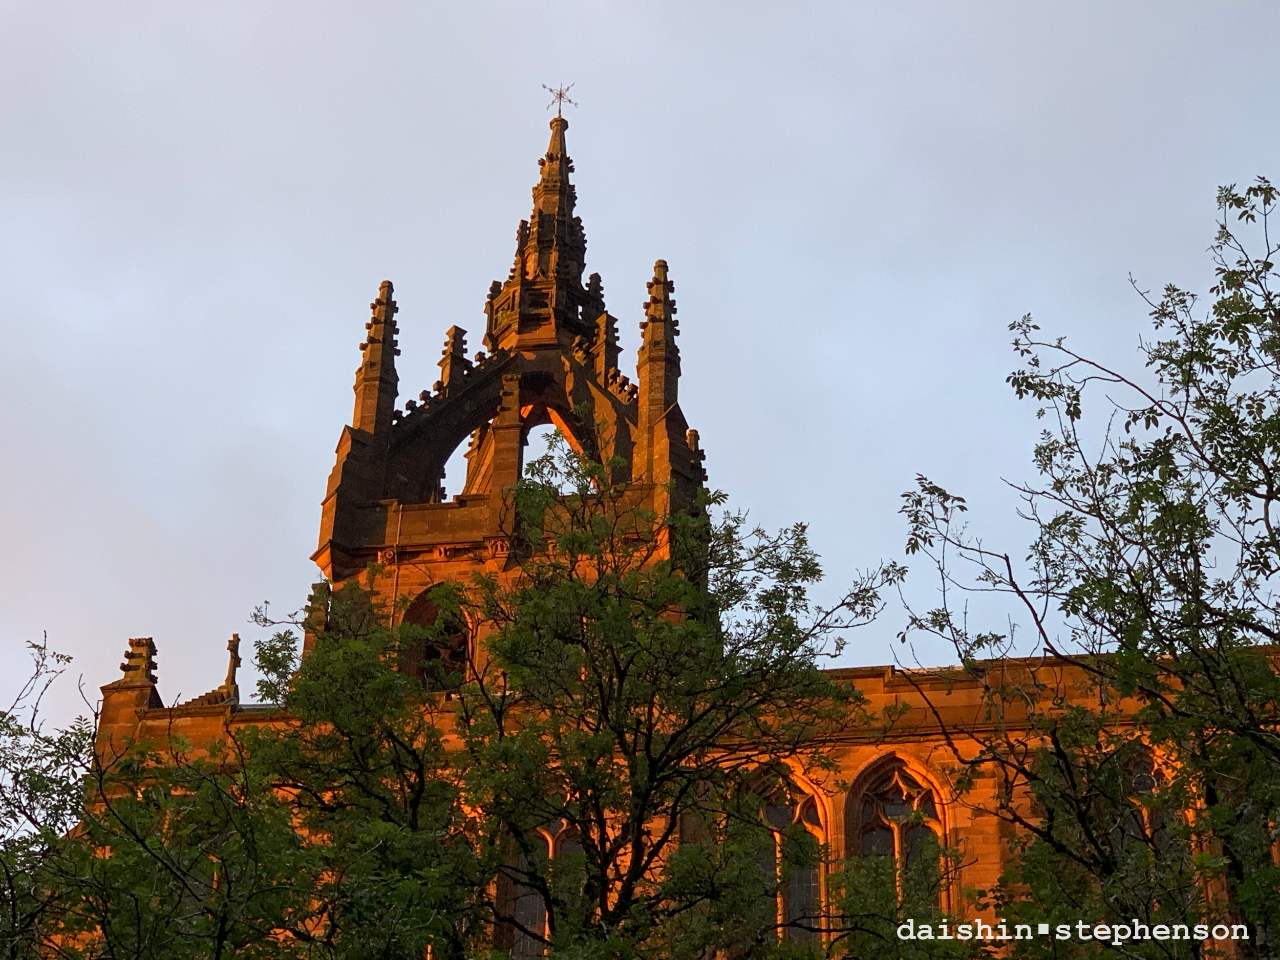 church tower illuminated by light at sunset